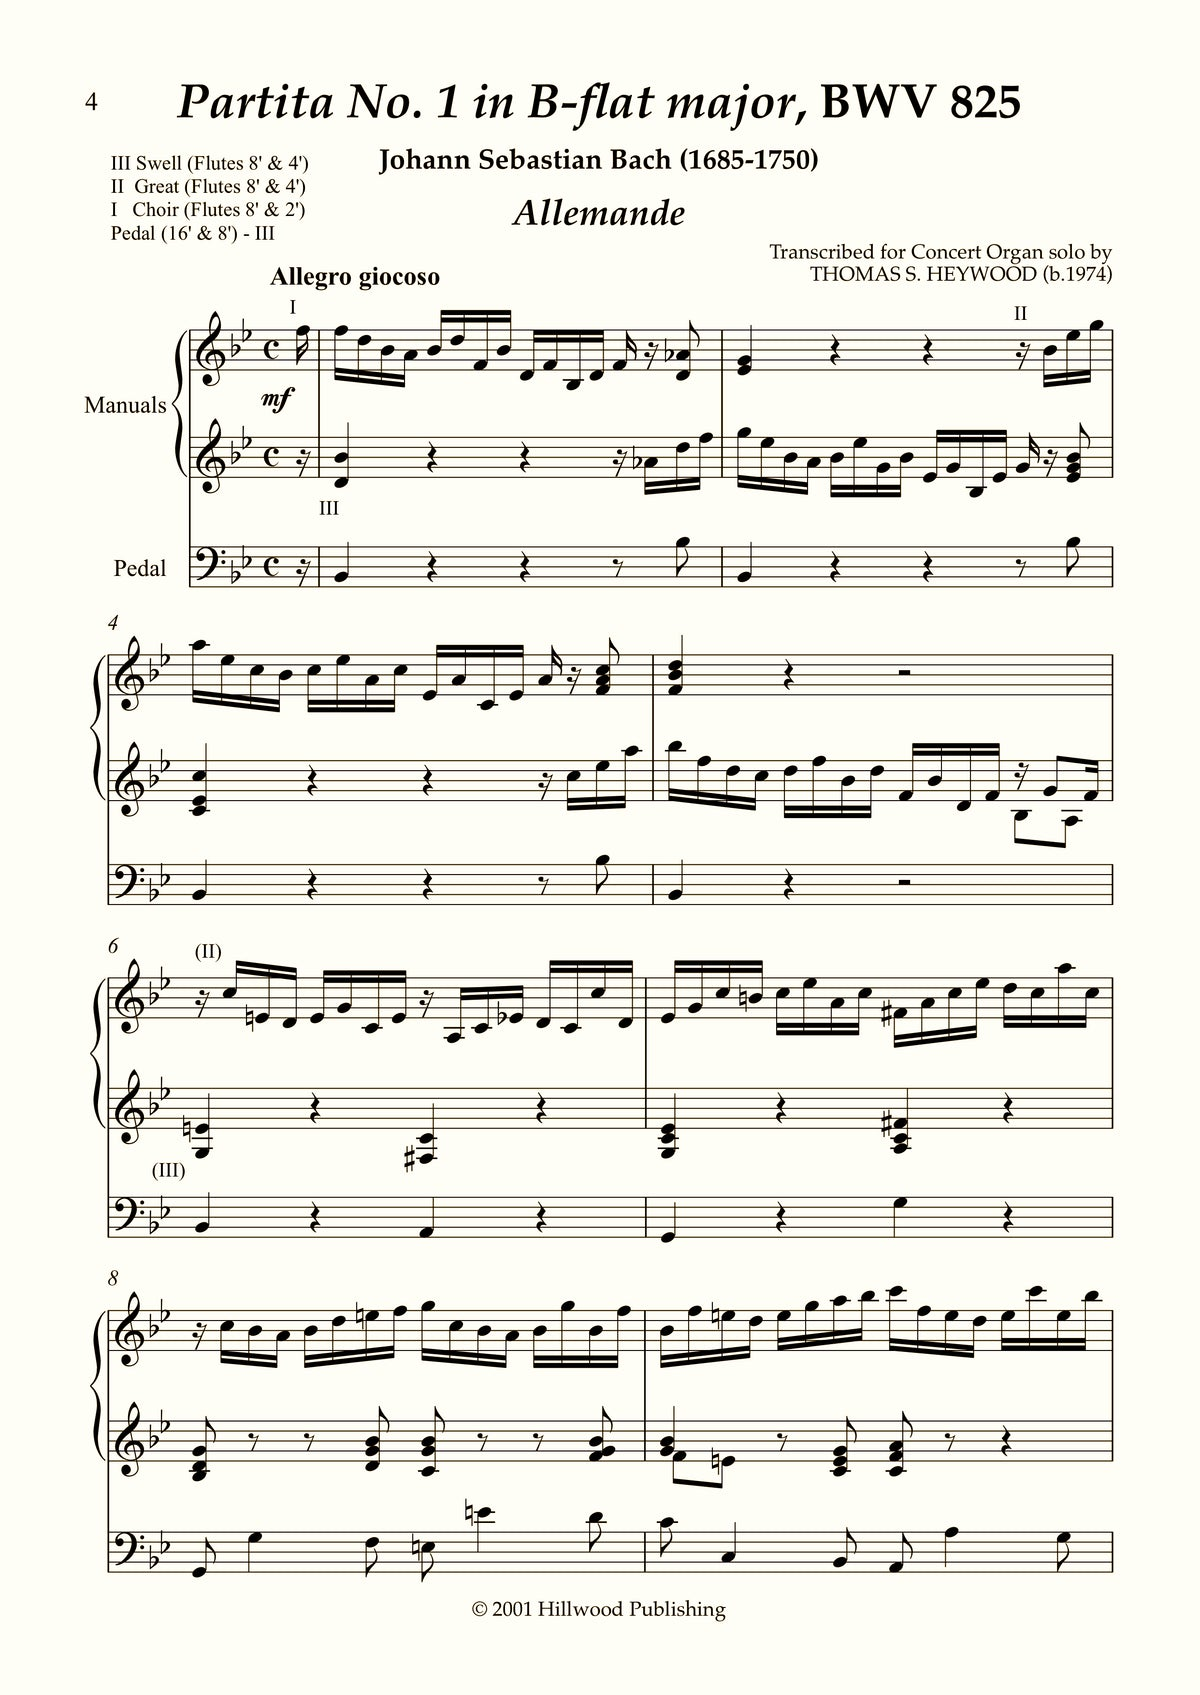 Bach/Heywood - Allemande from Partita No. 1 in B-flat major, BWV 825 (Score) | Thomas Heywood | Concert Organ International